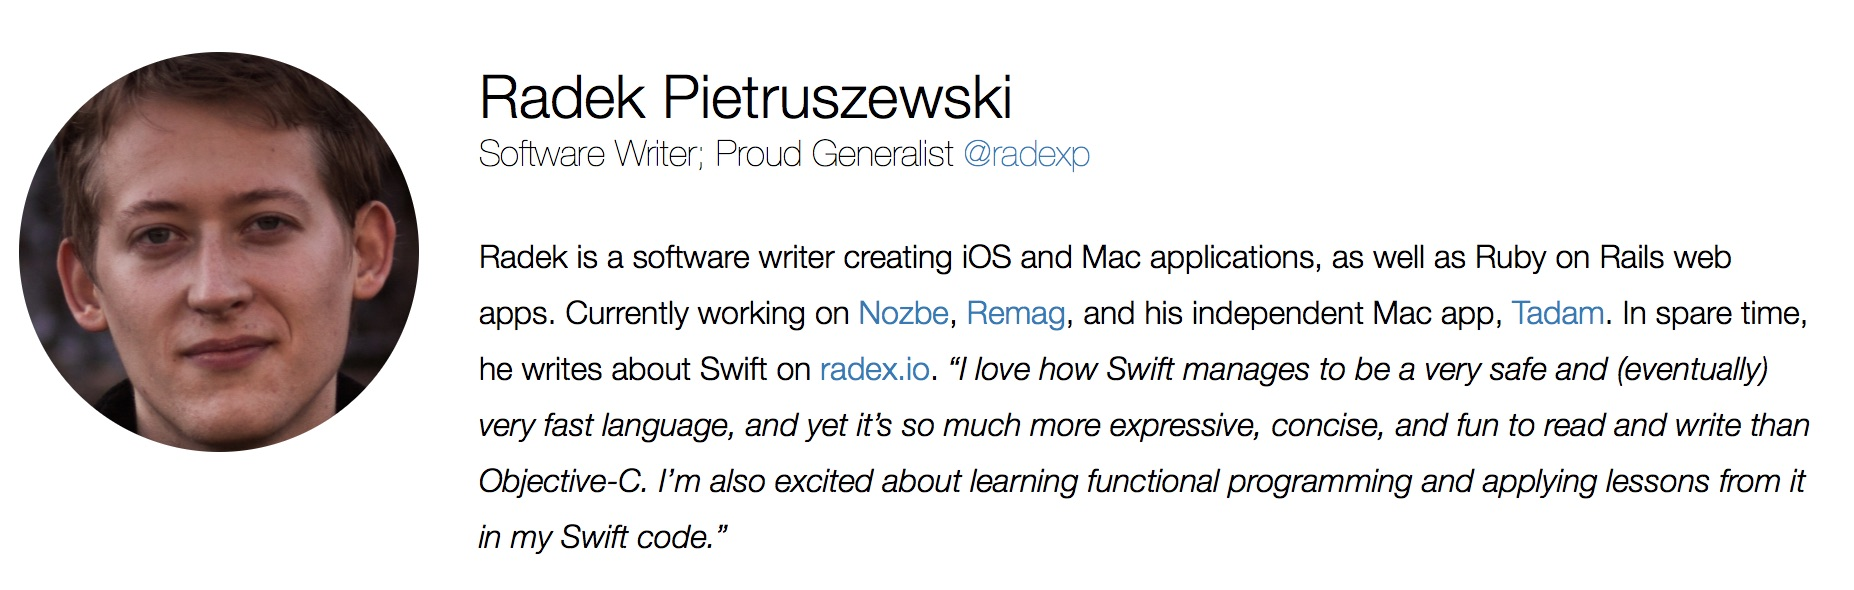 Radek on Swift Summit